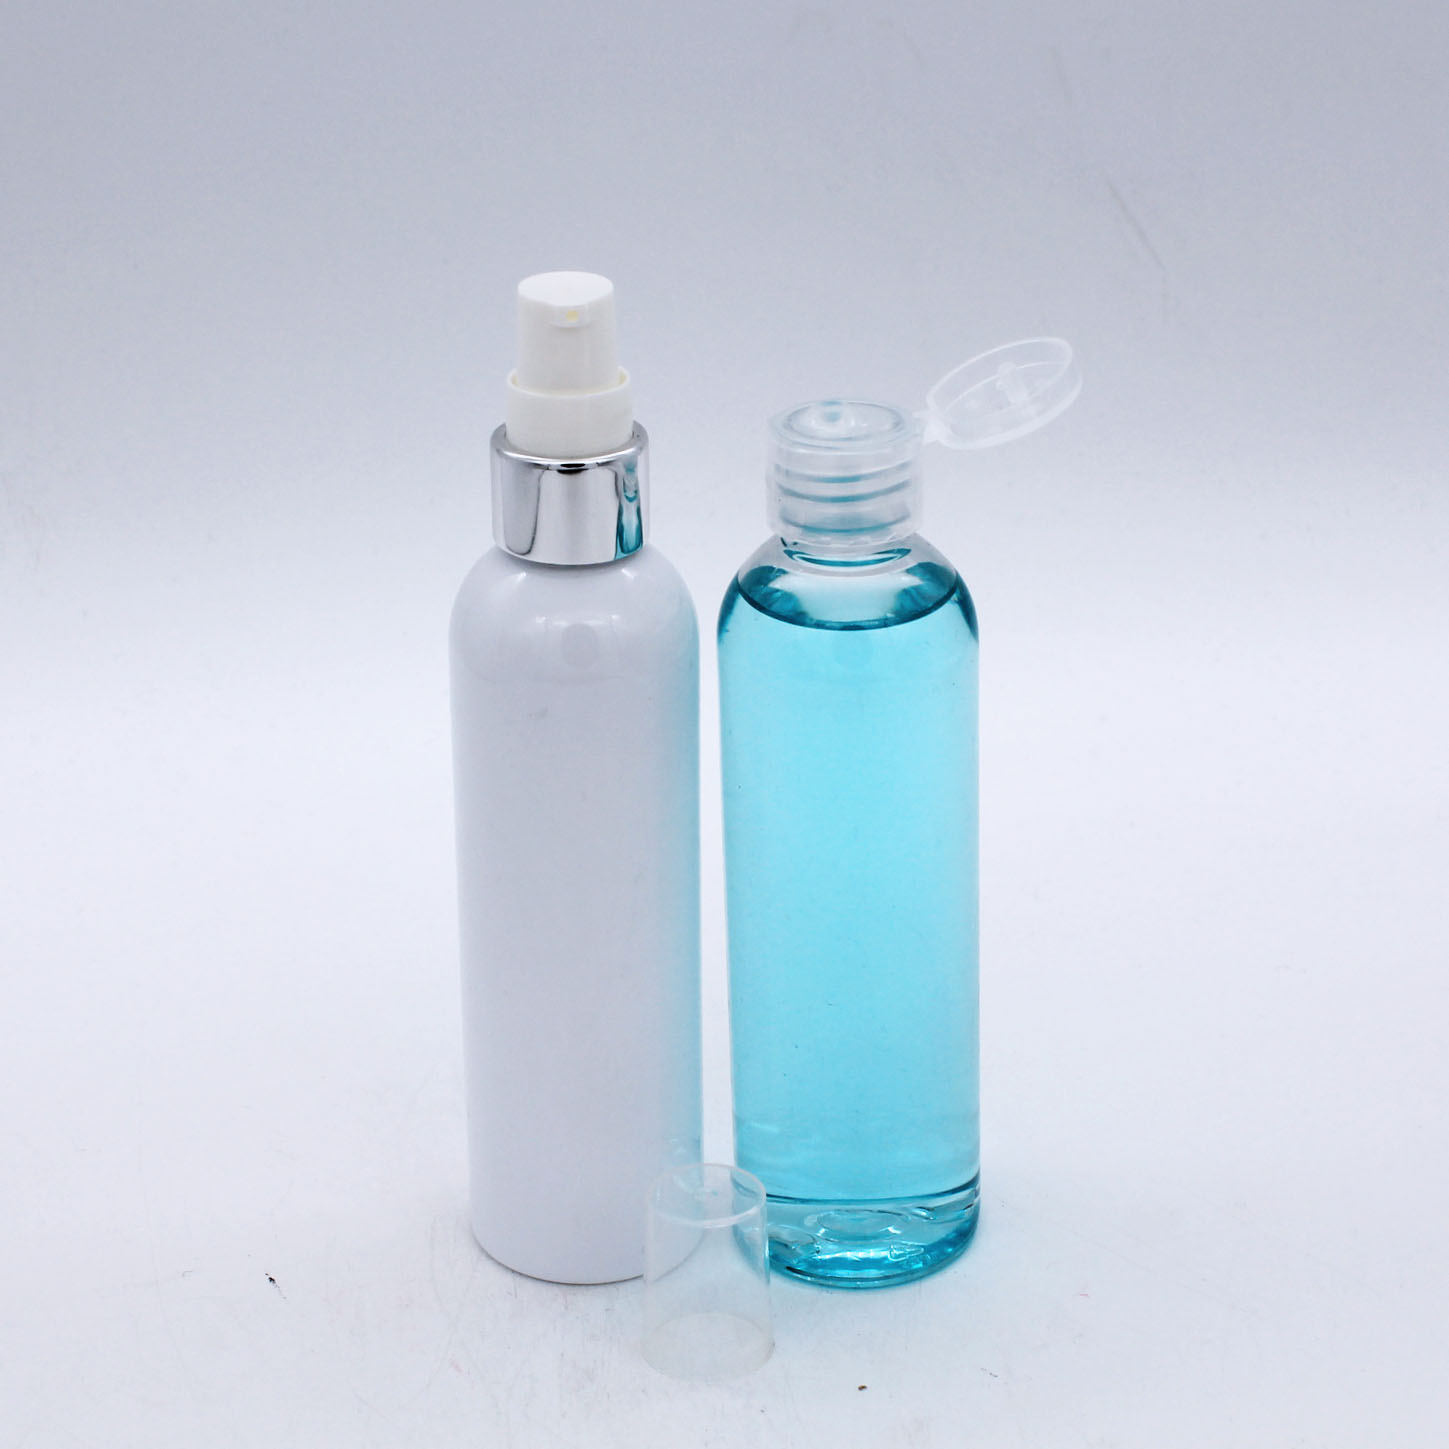 customized-empty-refillable-household-60ml-pet